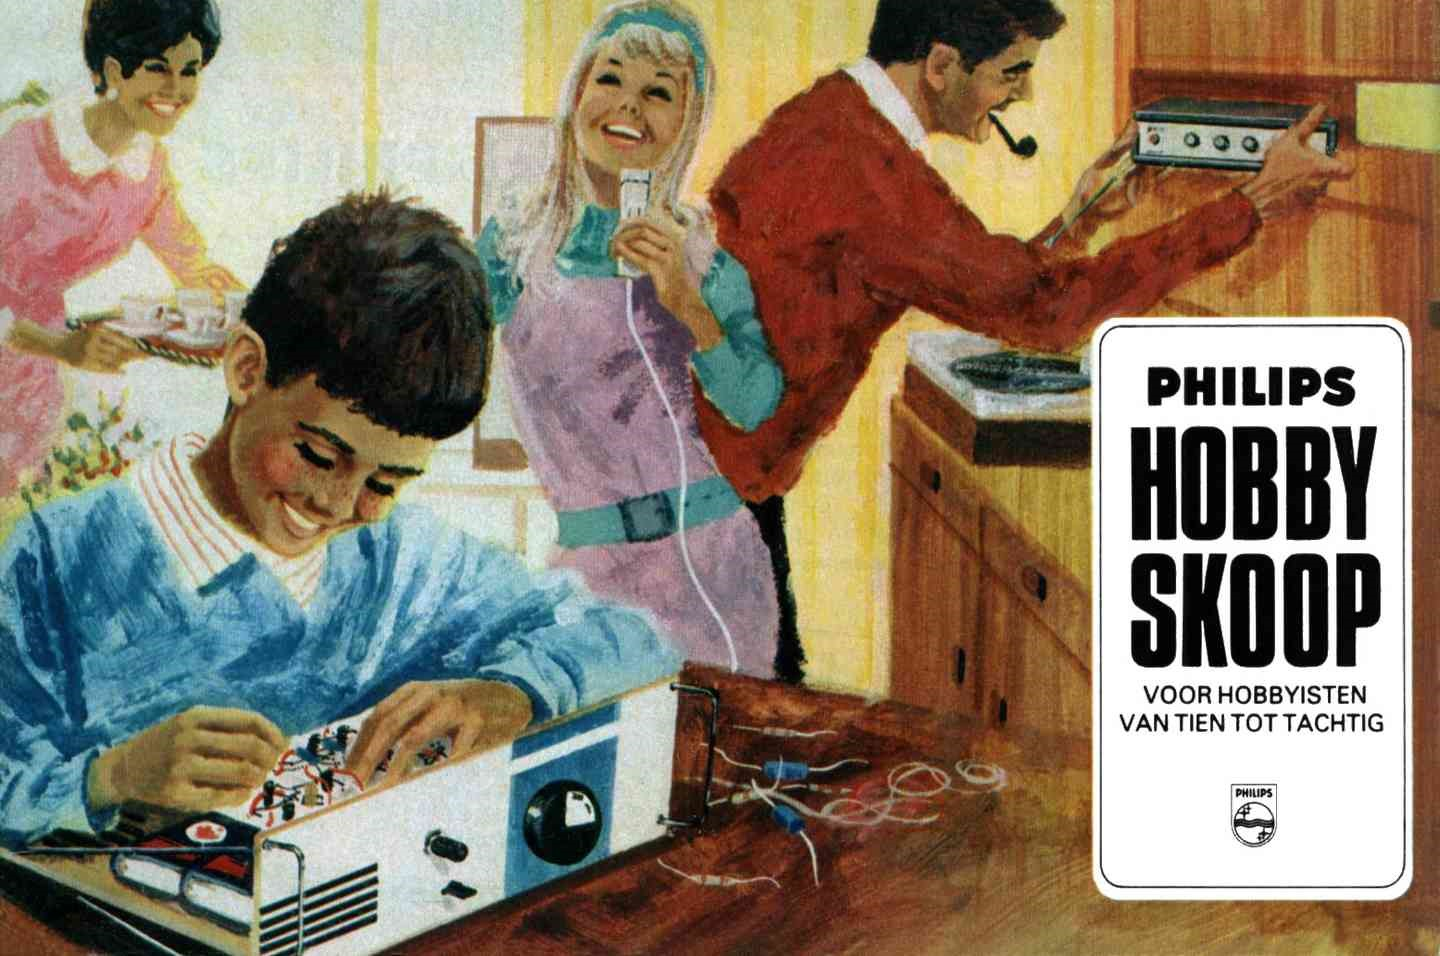 Philips, for hobbyists aged ten to eighty